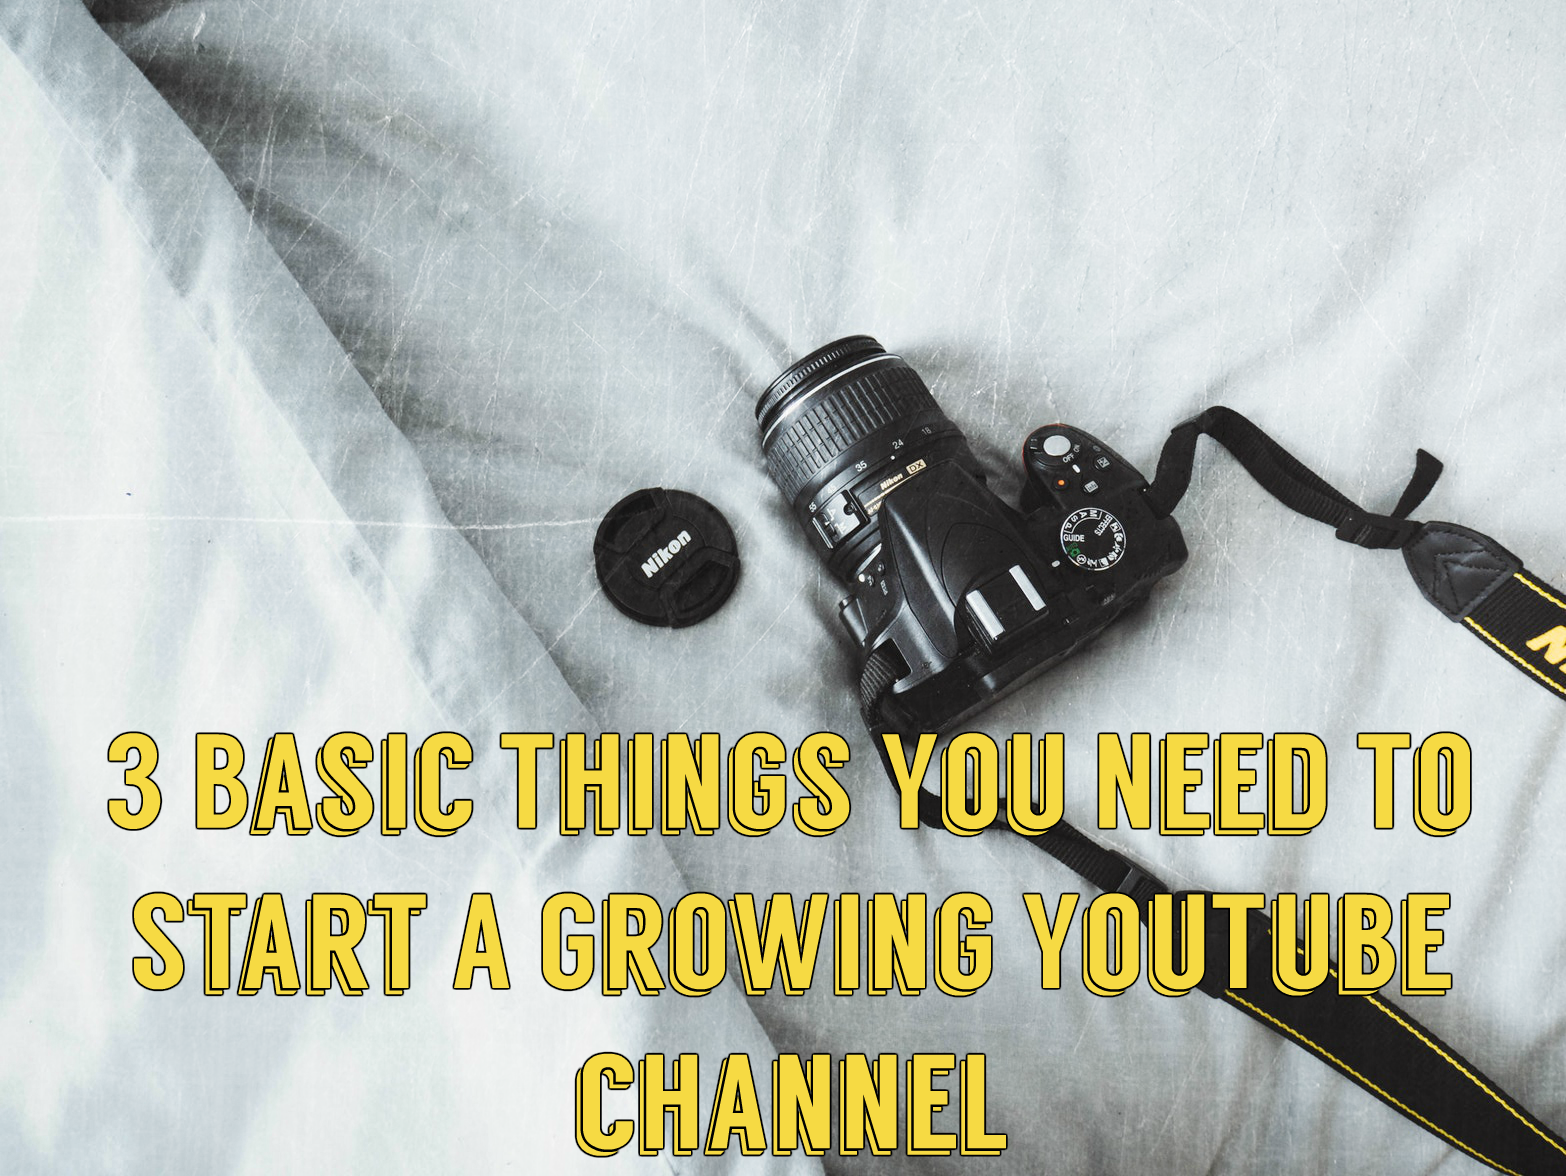 3 Basics Things You Need To Start A Growing YouTube Channel